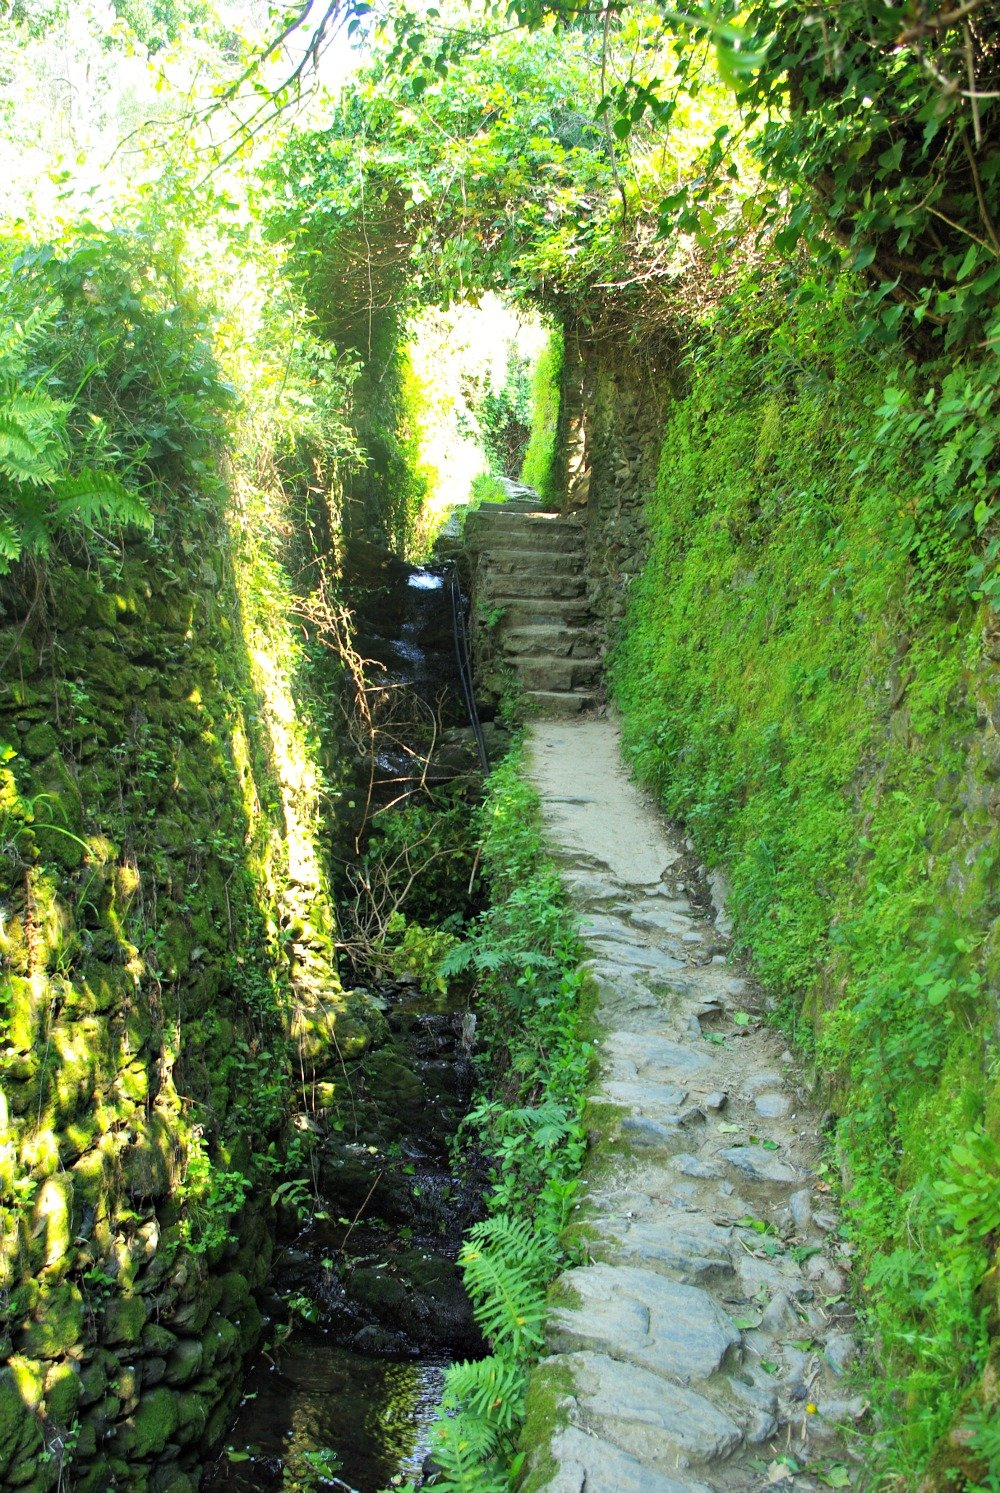 Romantic part of the pathway that leads between Monterosso al Mare and Vernazza